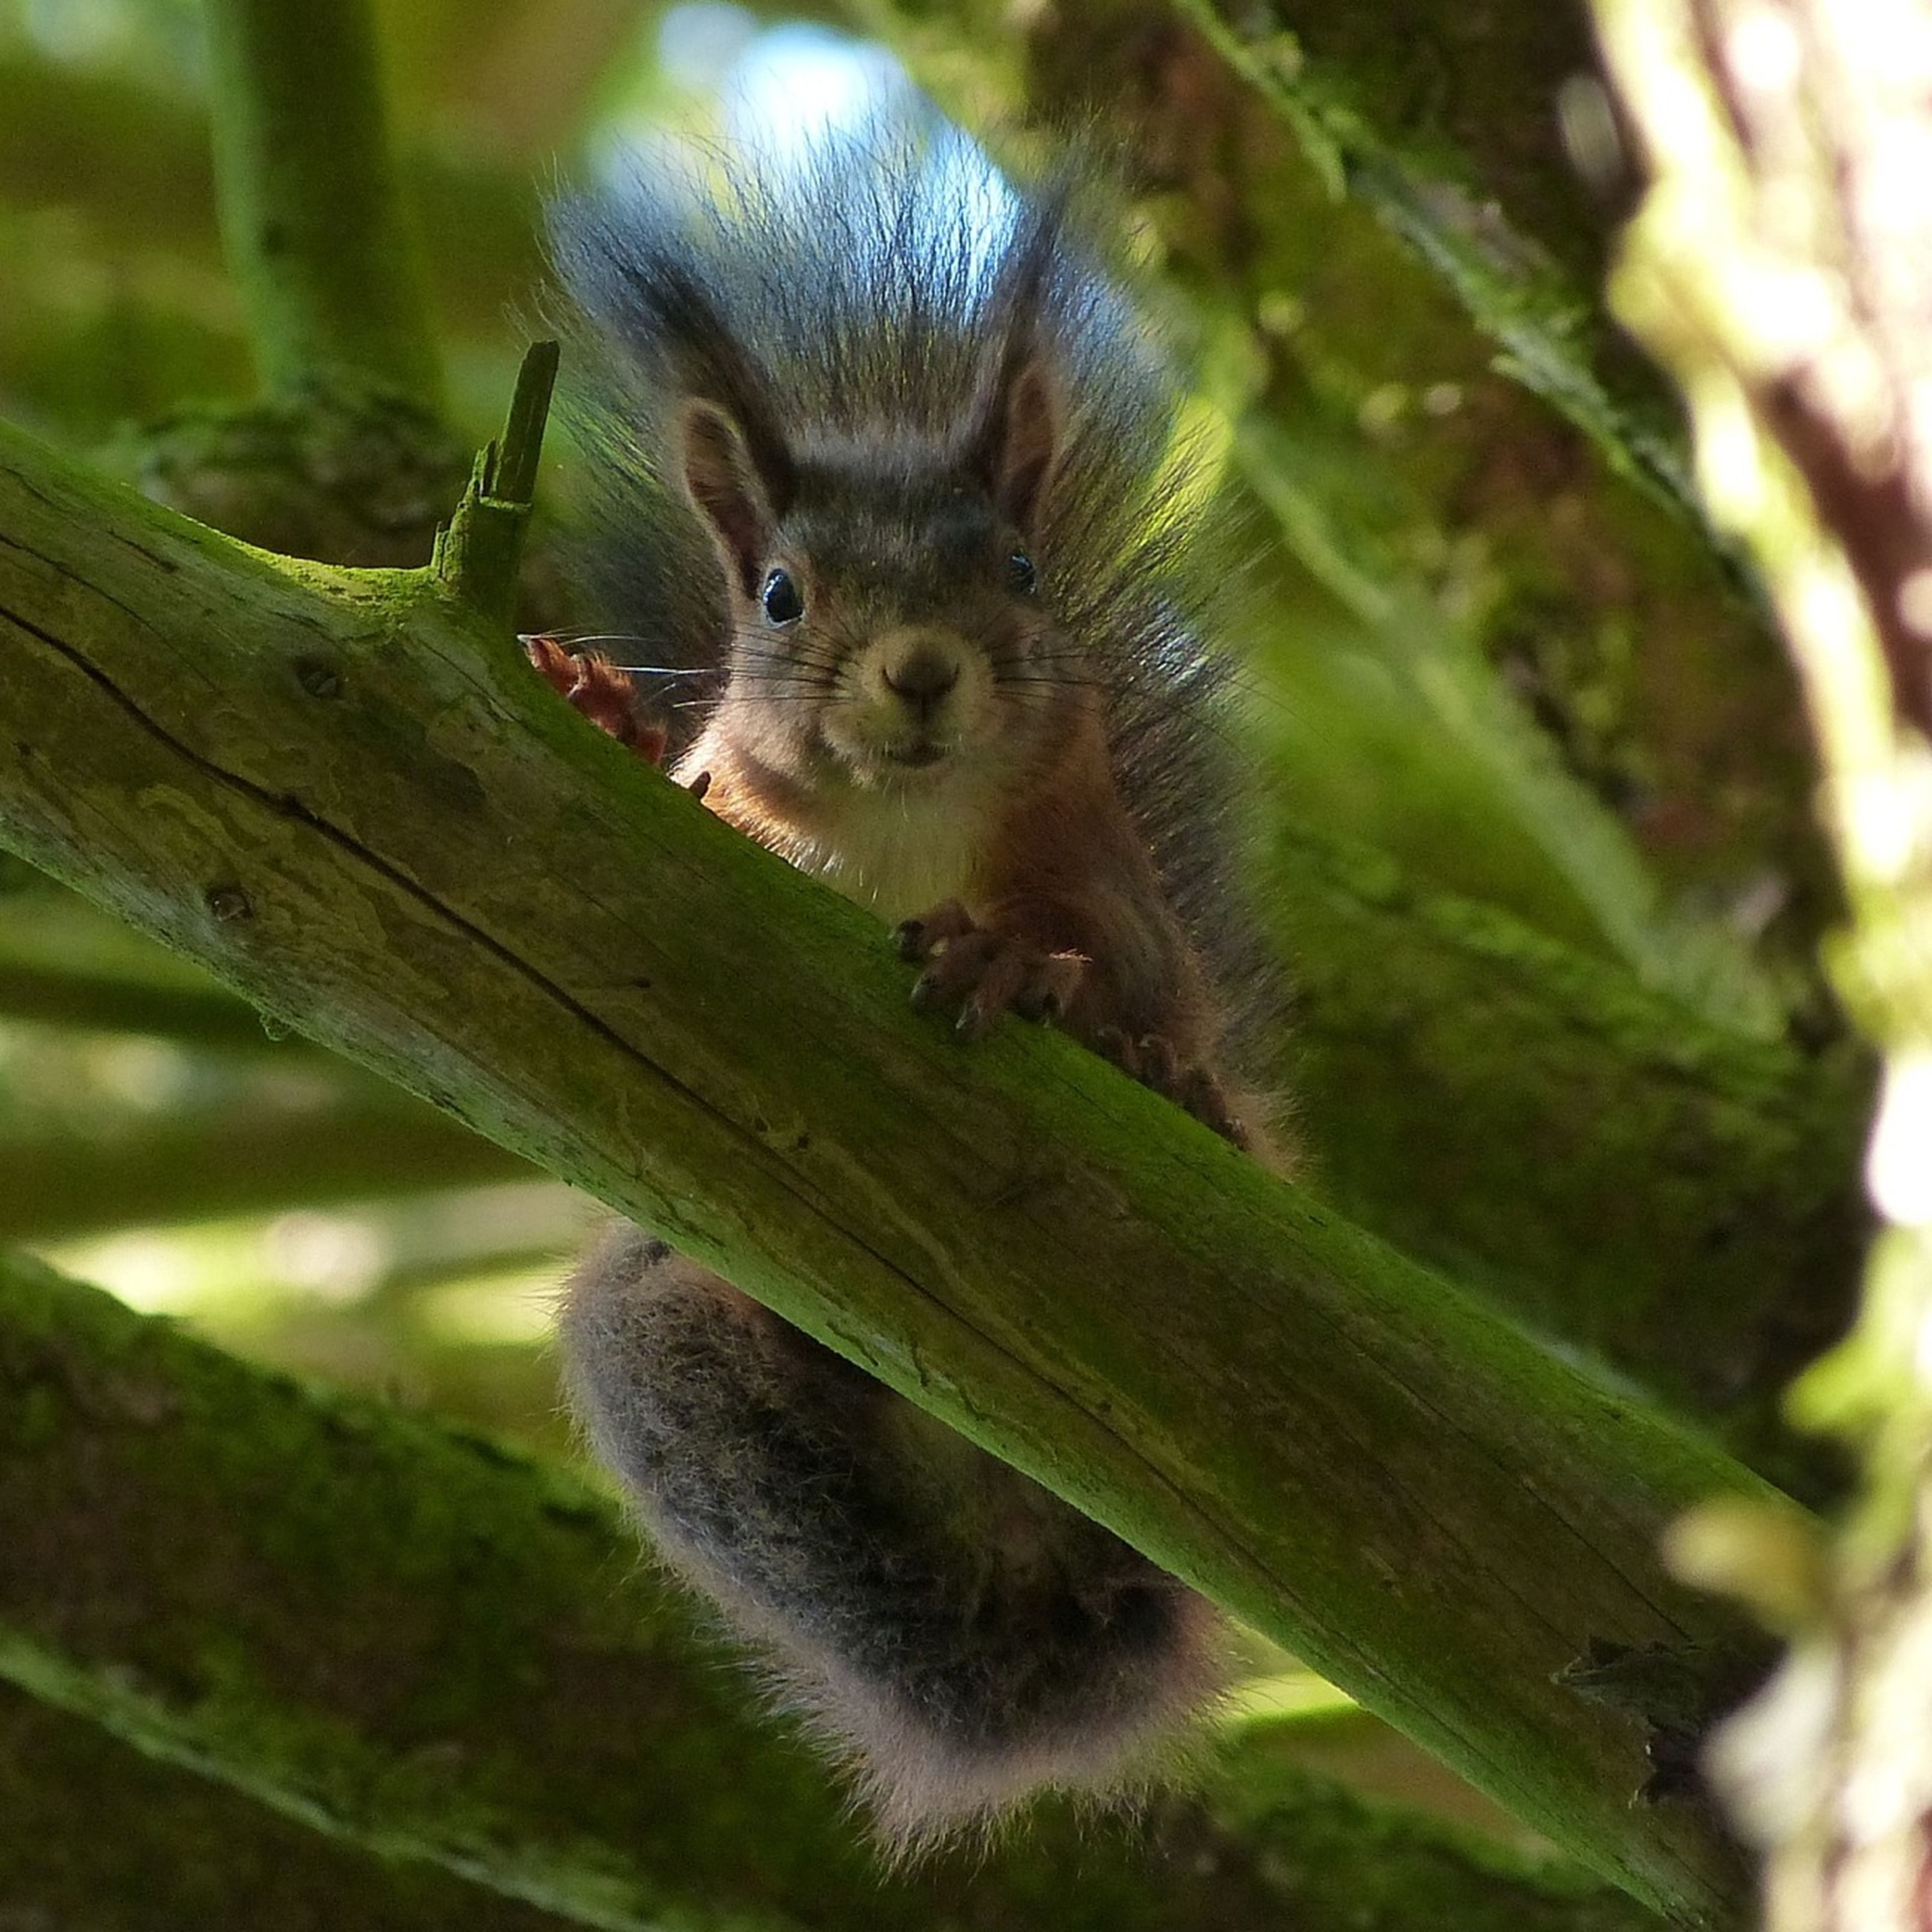 animal themes, one animal, animals in the wild, wildlife, focus on foreground, close-up, tree, branch, nature, zoology, sitting, full length, vertebrate, outdoors, day, looking away, portrait, leaf, no people, squirrel